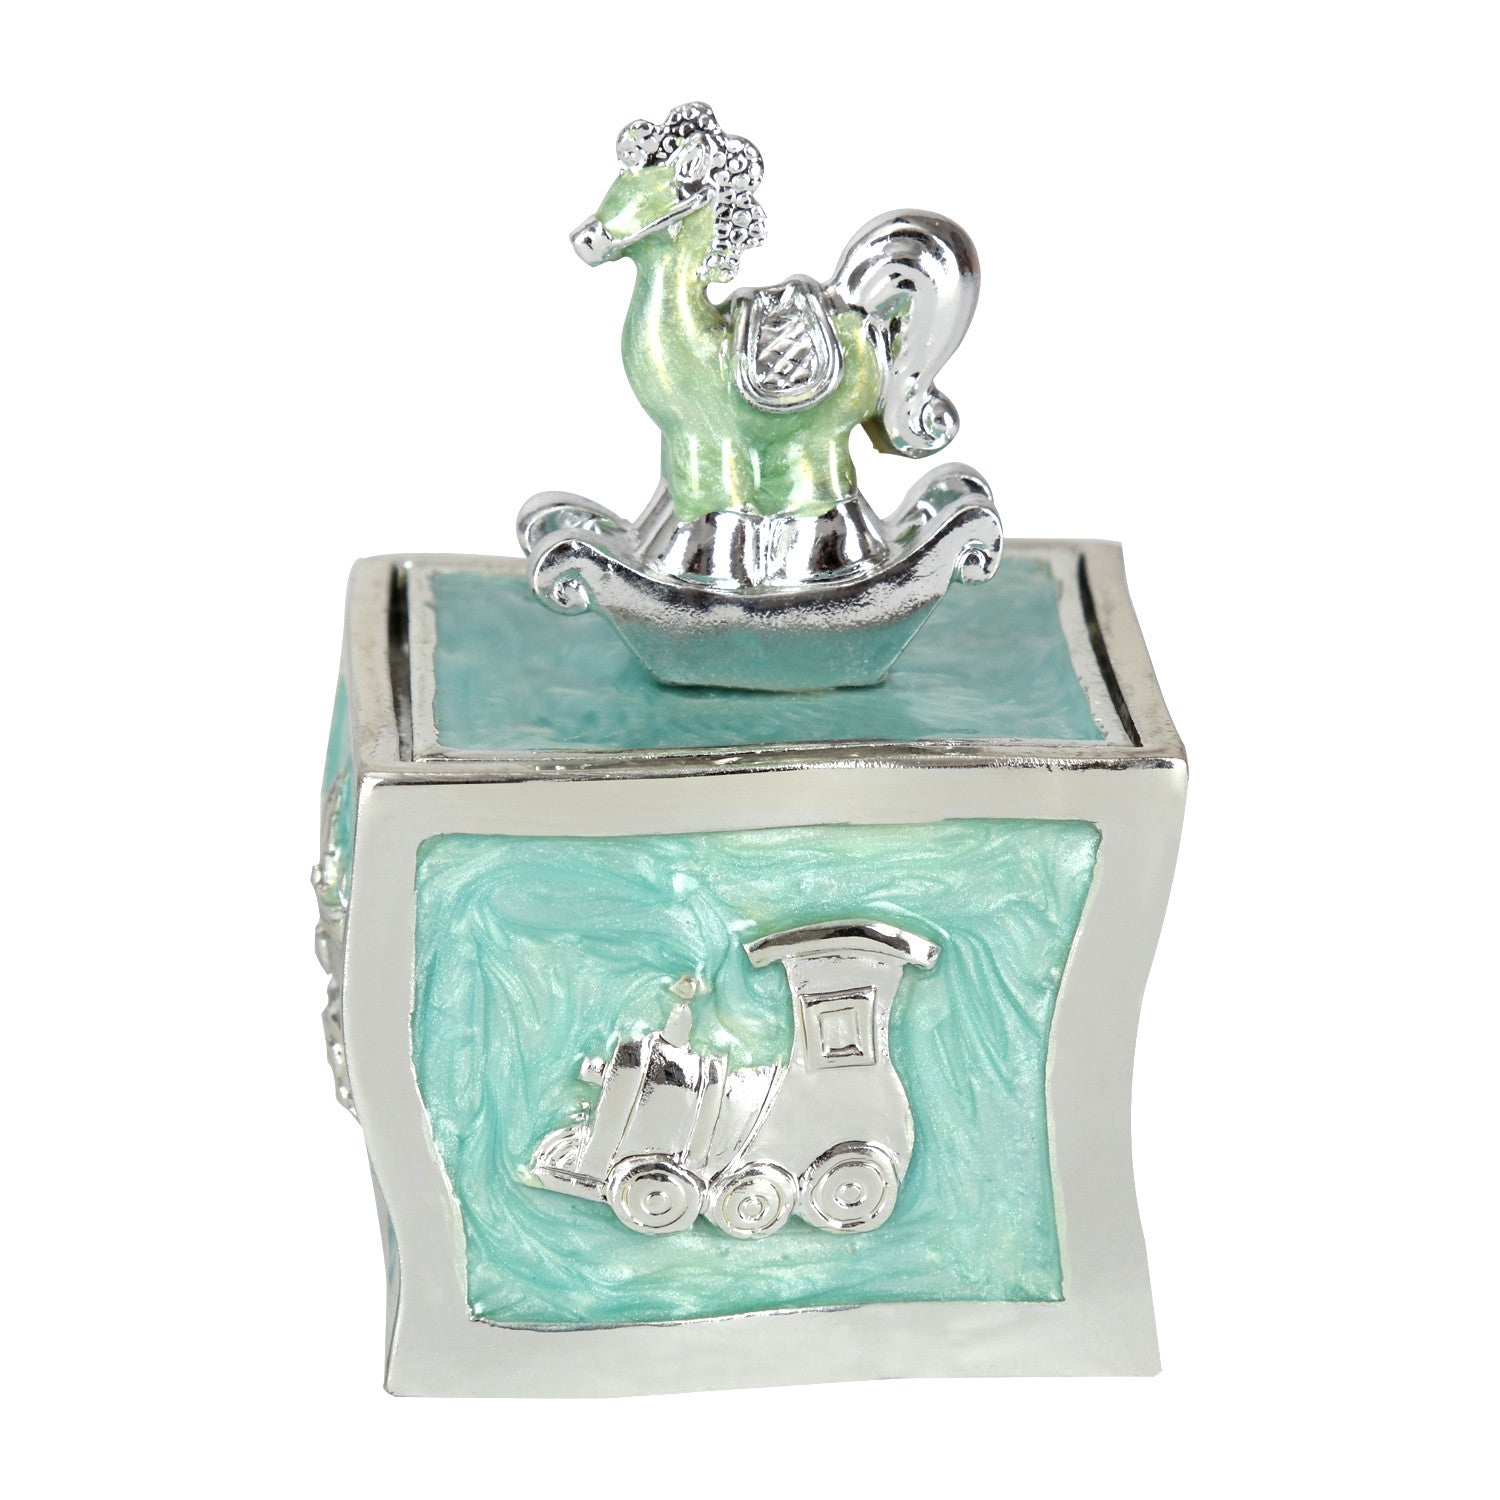 BABY, Trinket box, Blue - Barton,Son & Co.